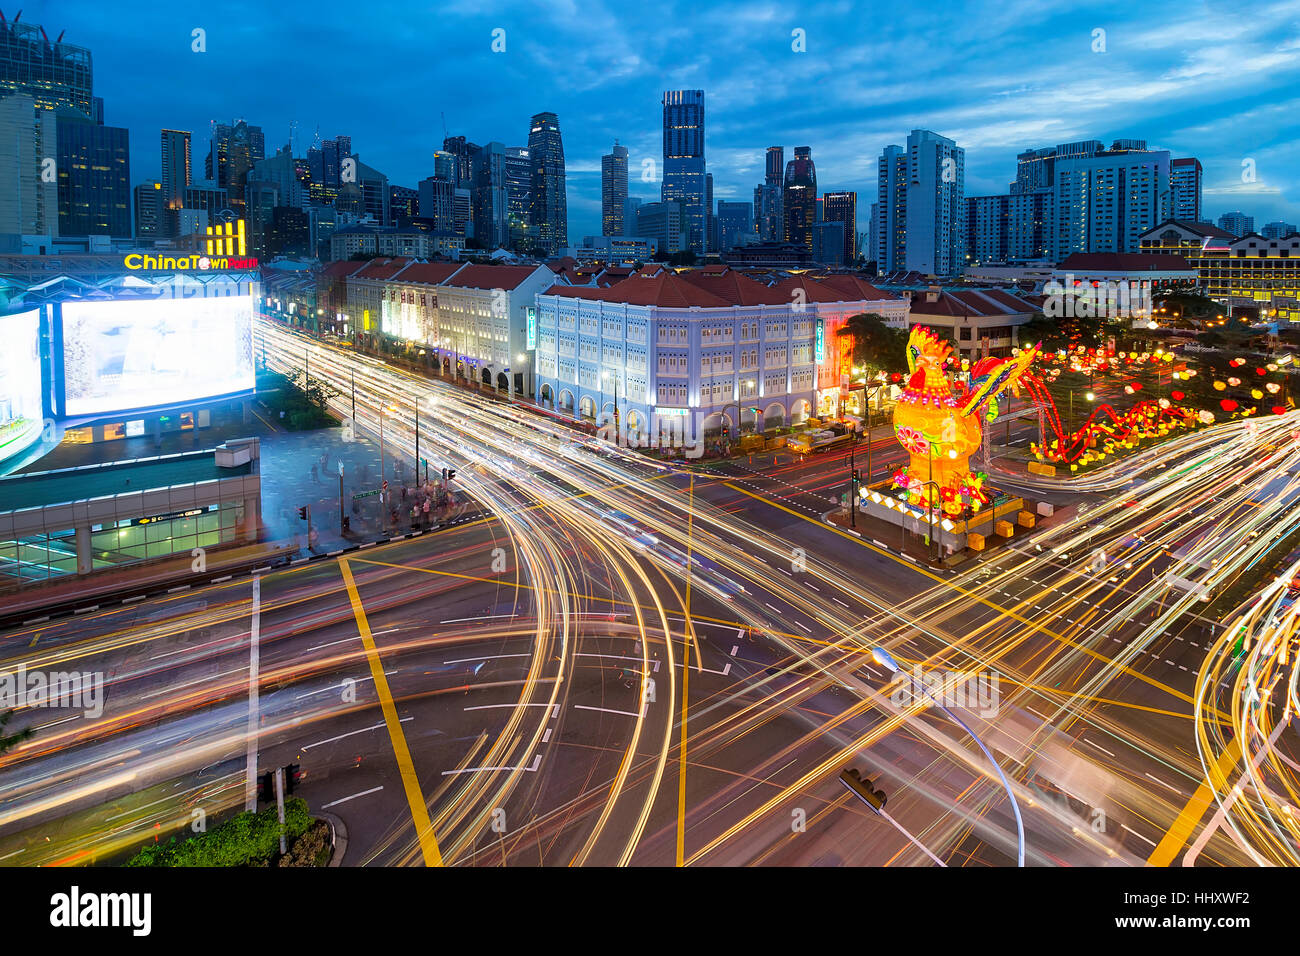 Rush Hour Traffic Light Trails at Singapore Chinatown with Chinese New Year of the Rooster decoration - Stock Image